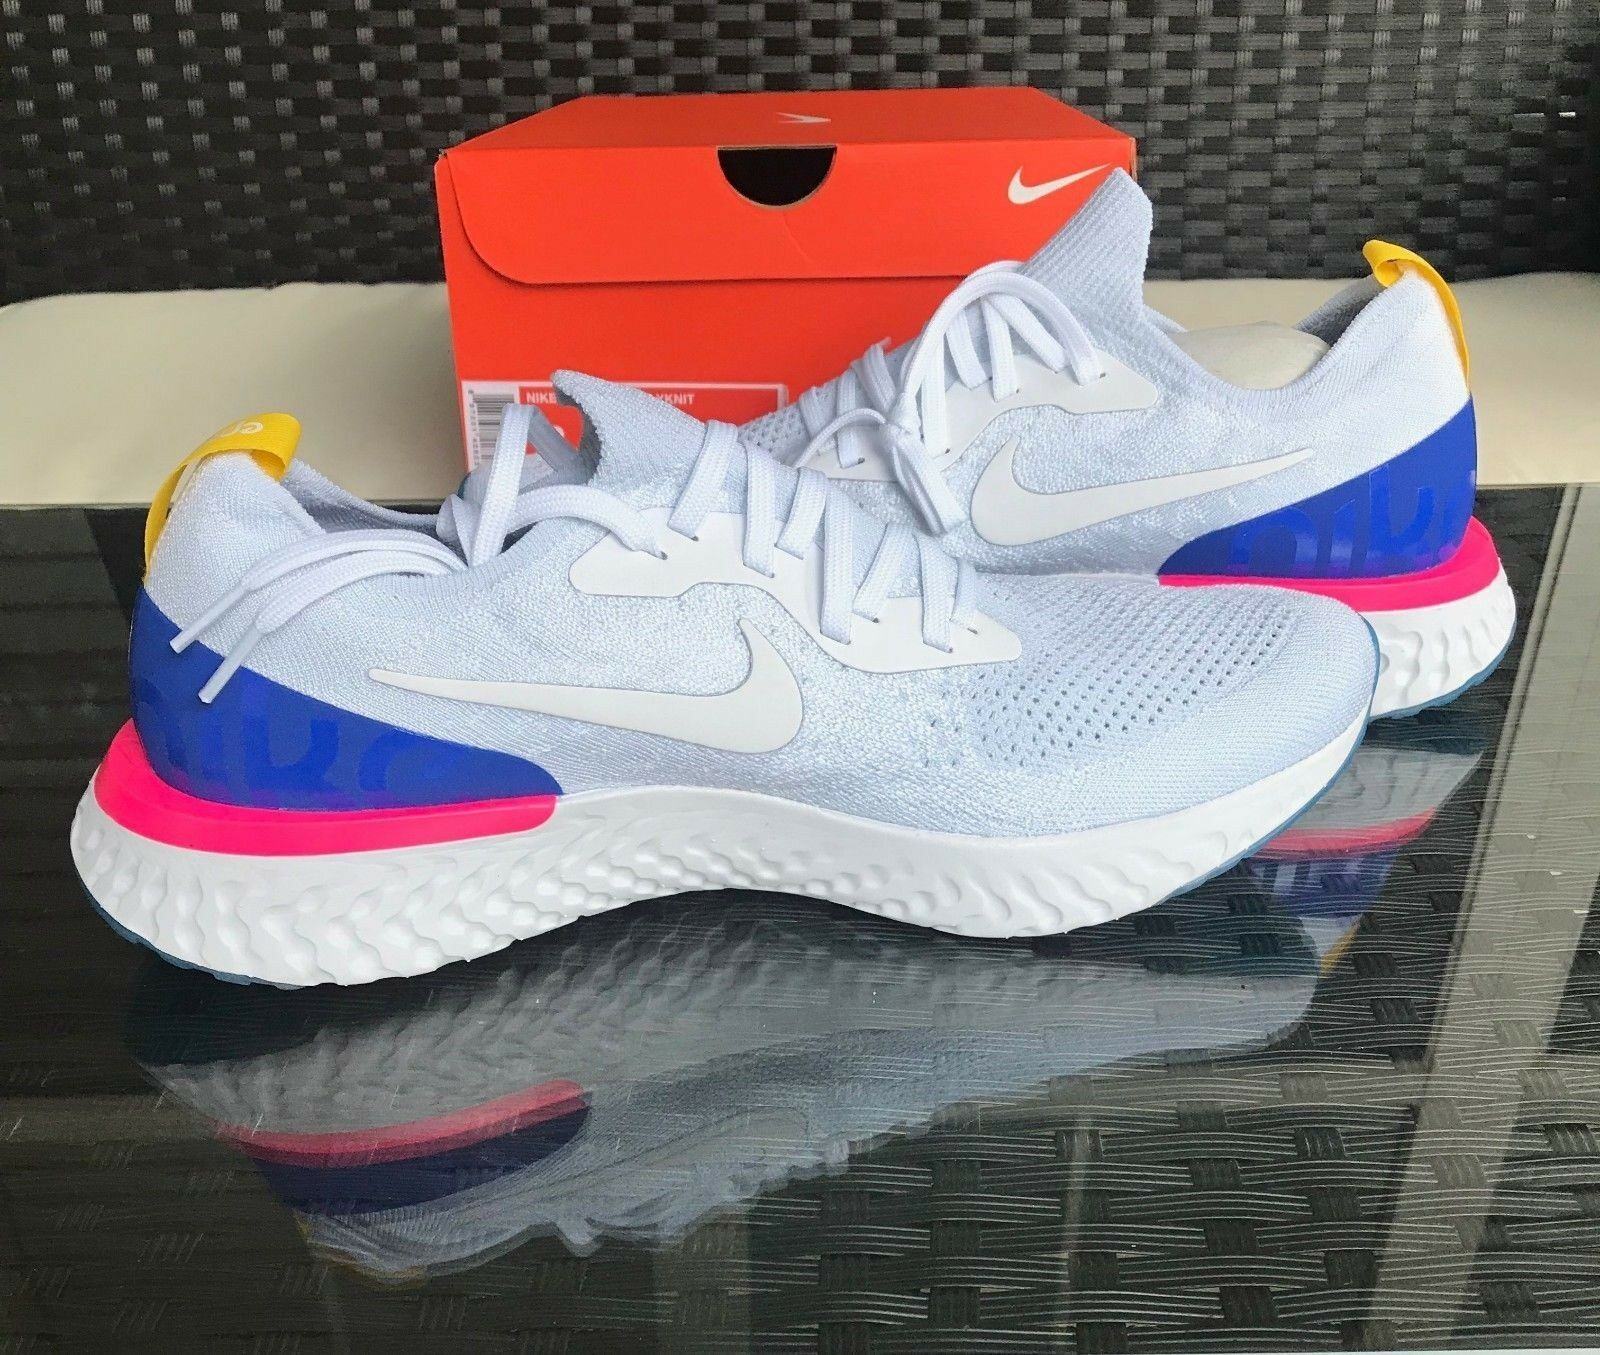 Nike Epic Red React Flyknit White Blue Red Epic AQ0067-101 DS Limited cbafc6